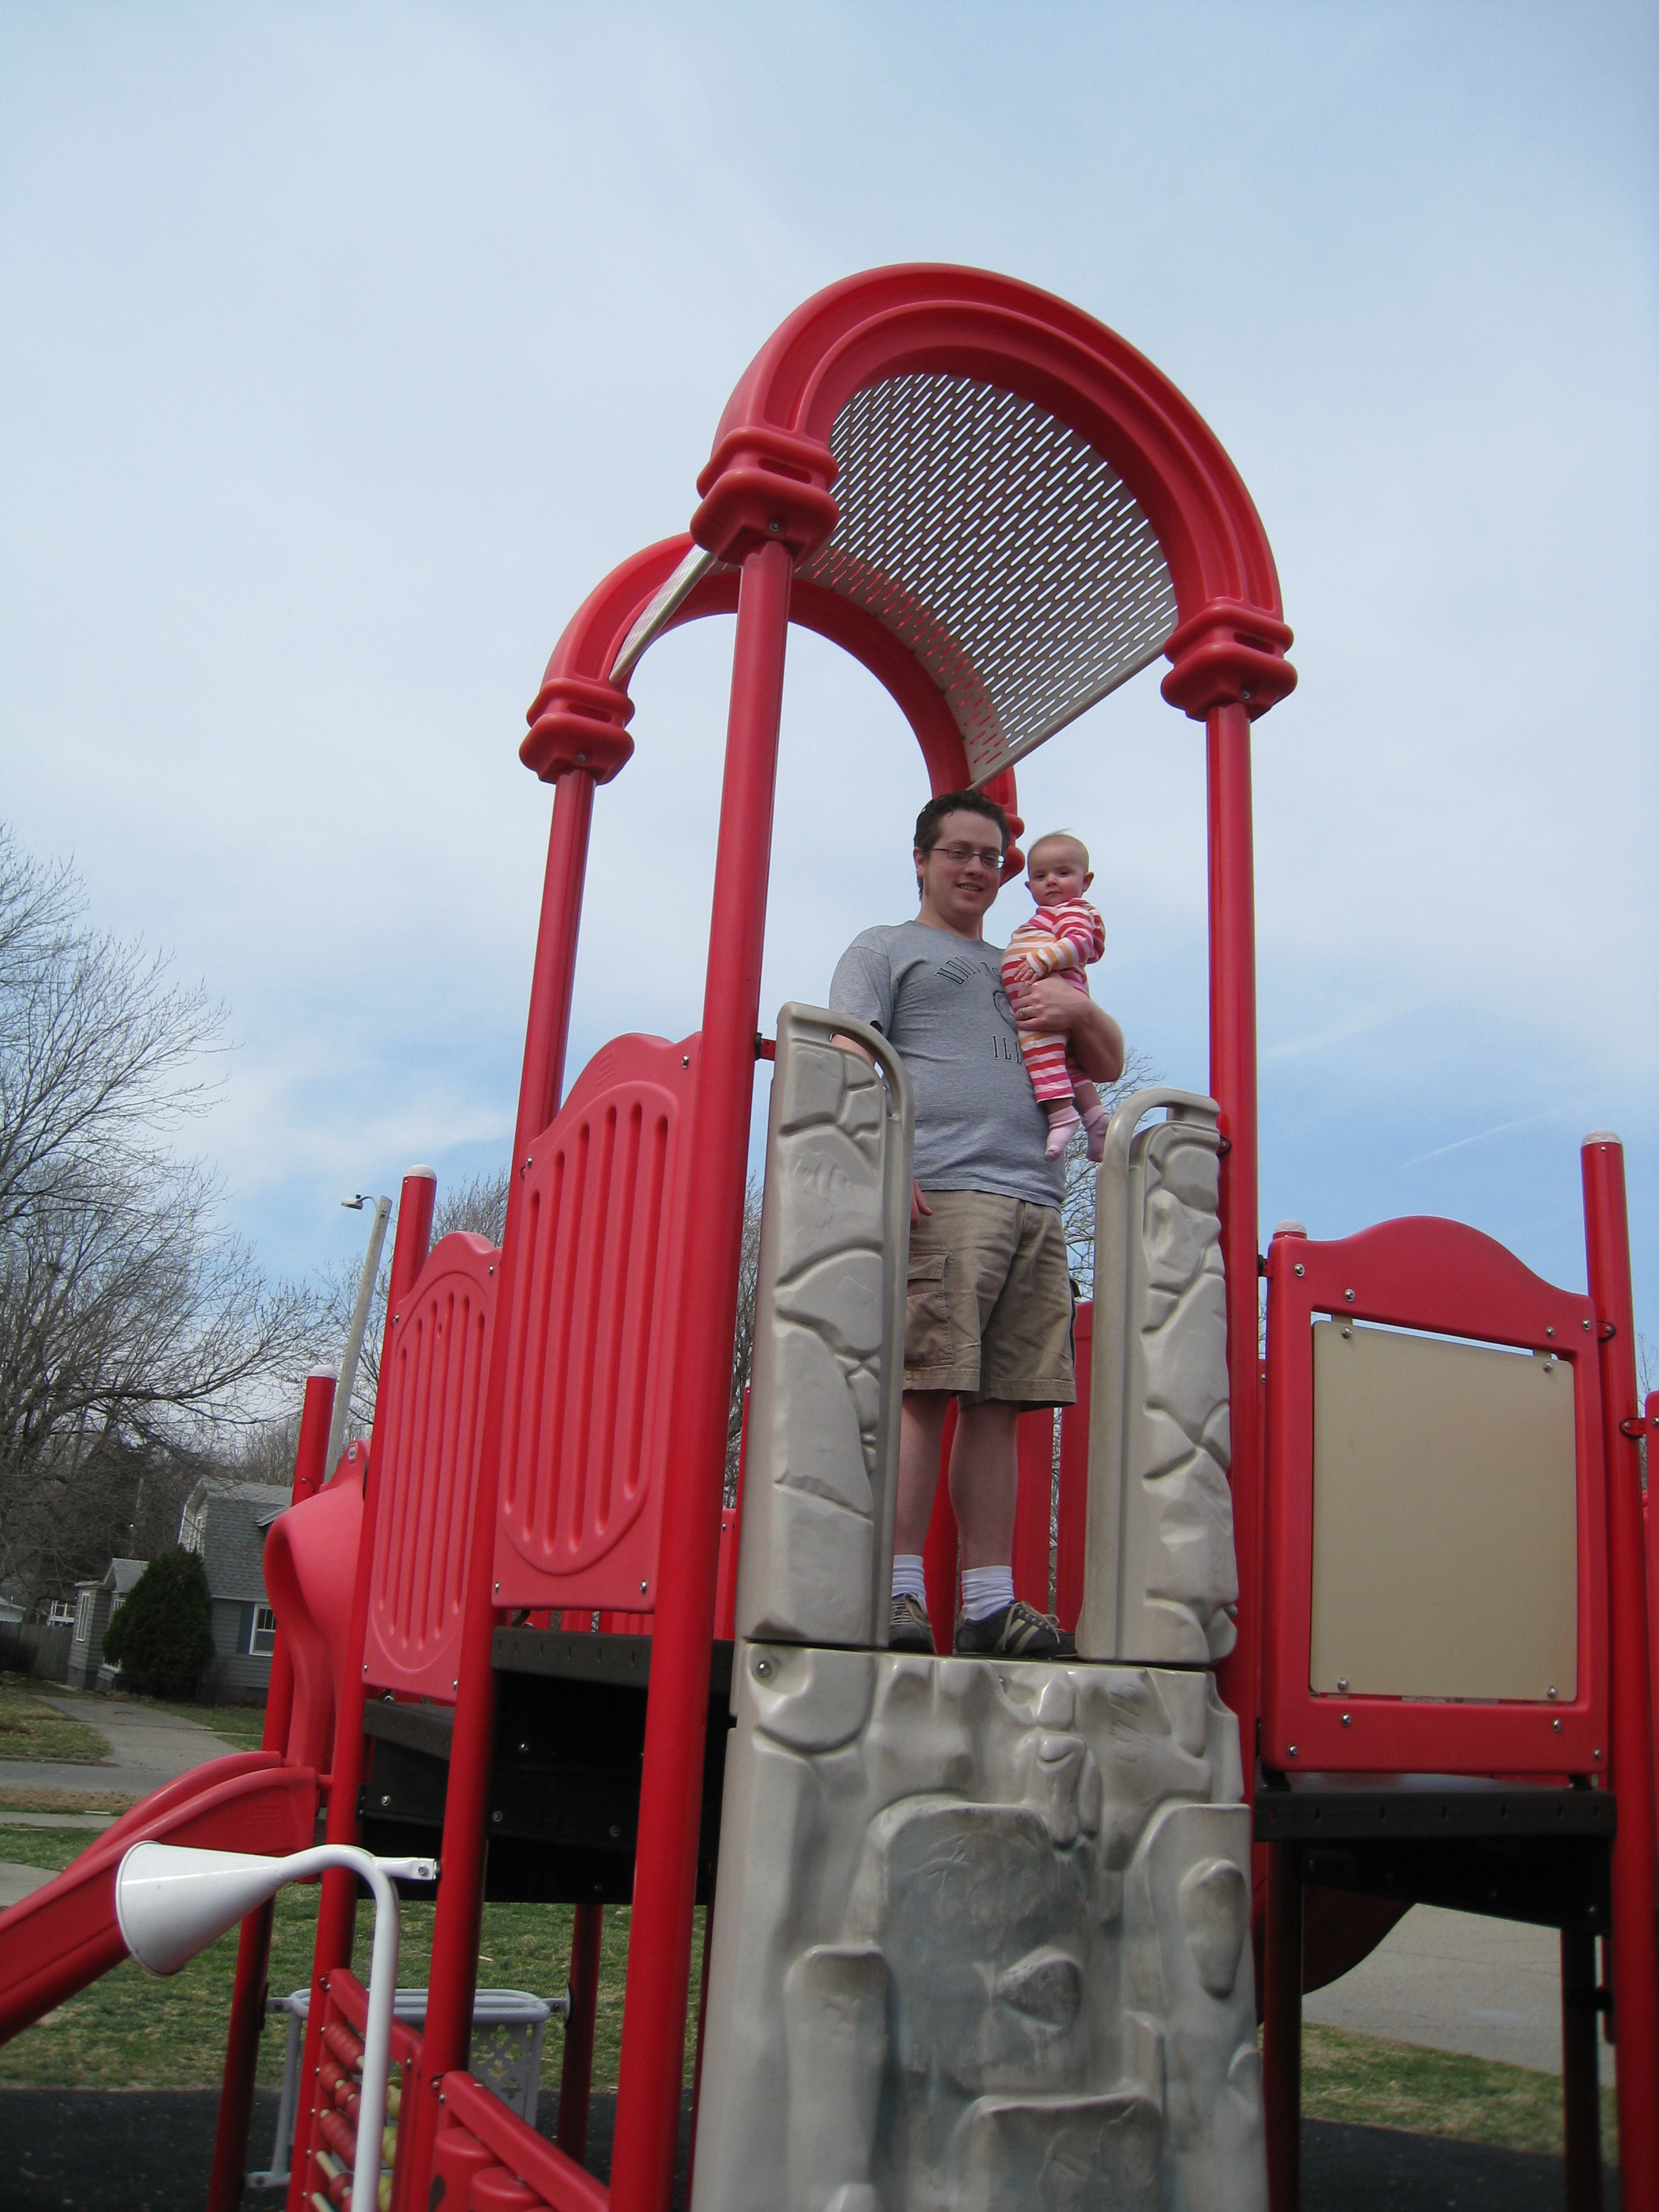 dan-and-kivrin-at-the-playground